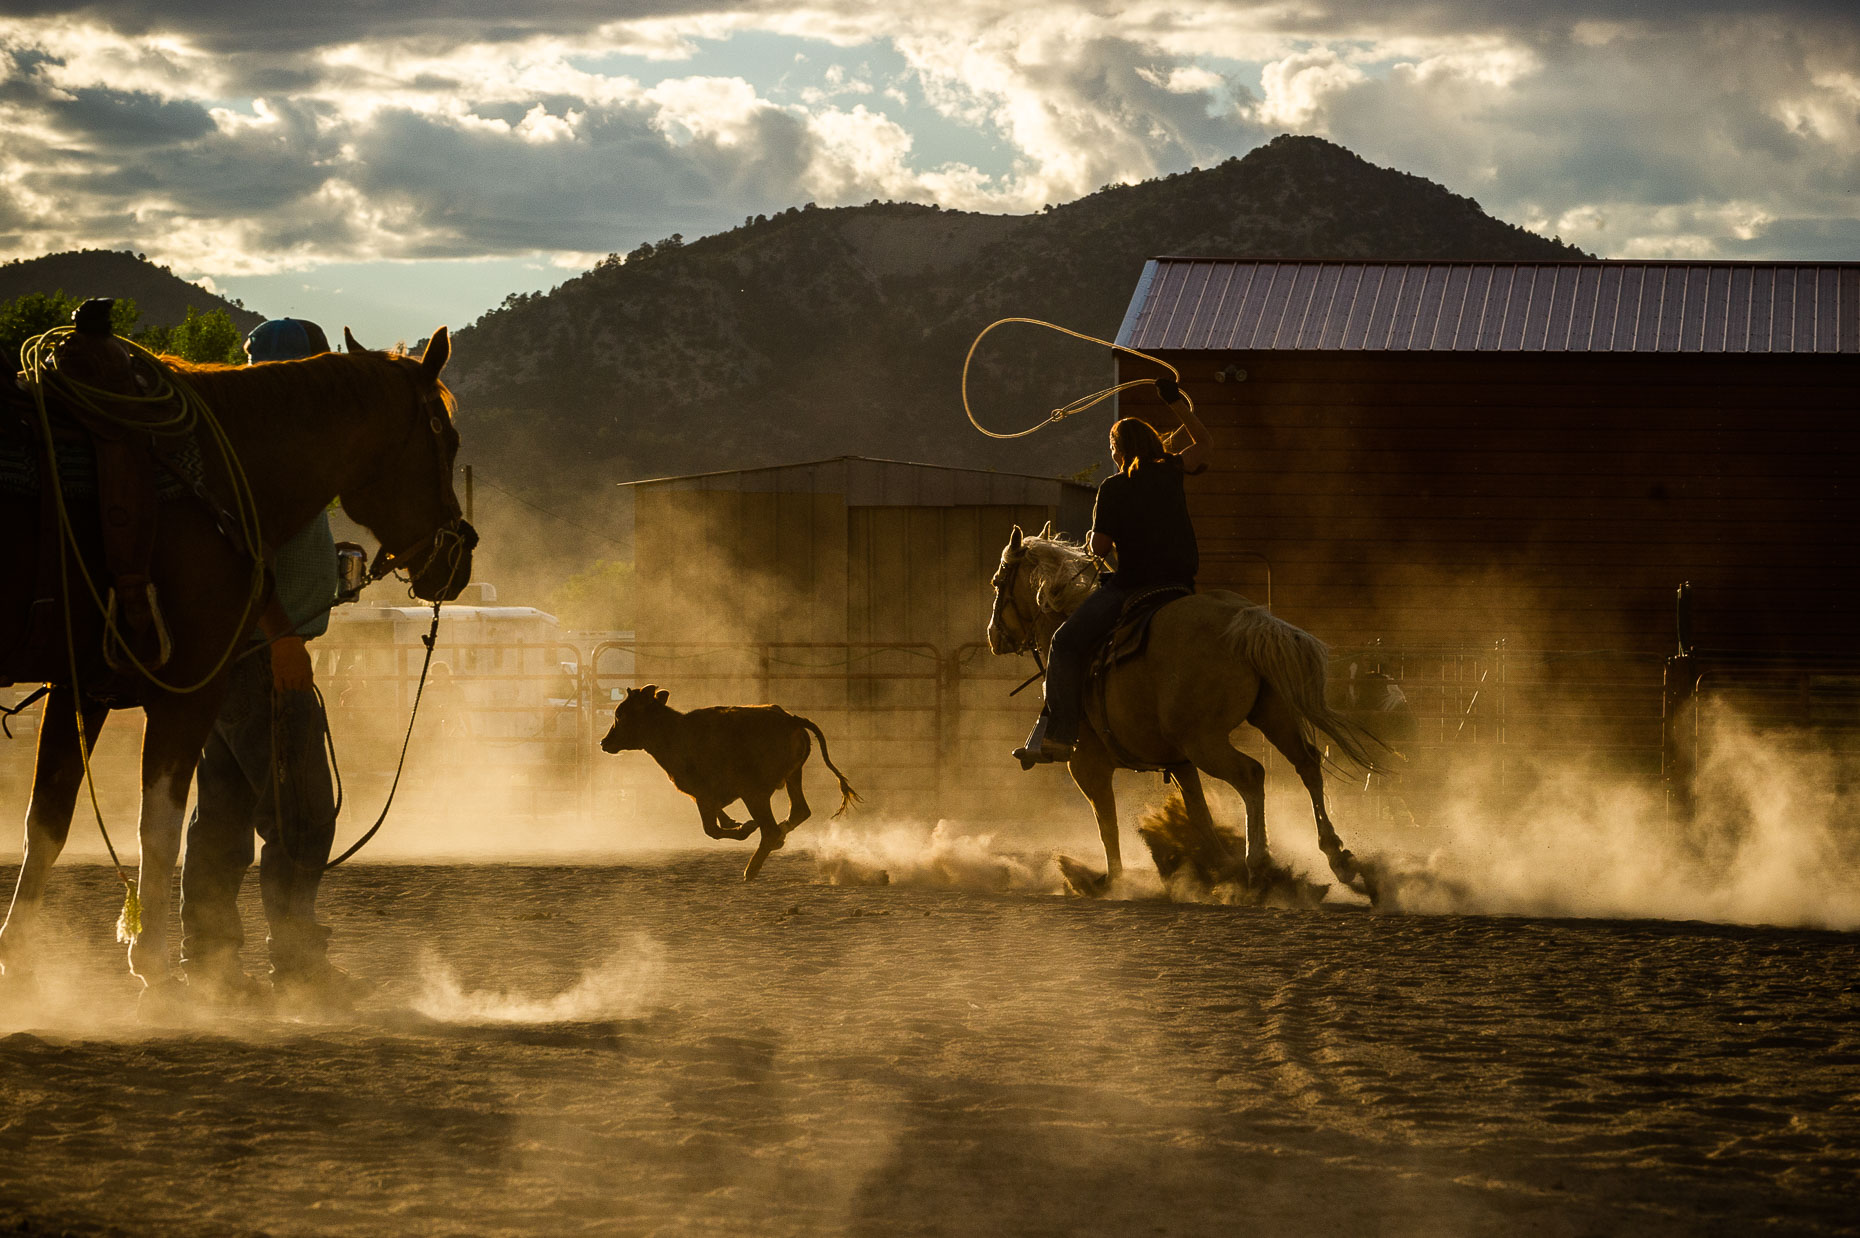 aaron-ingrao-cattle-roping-masters-arena-durango-colorado-327